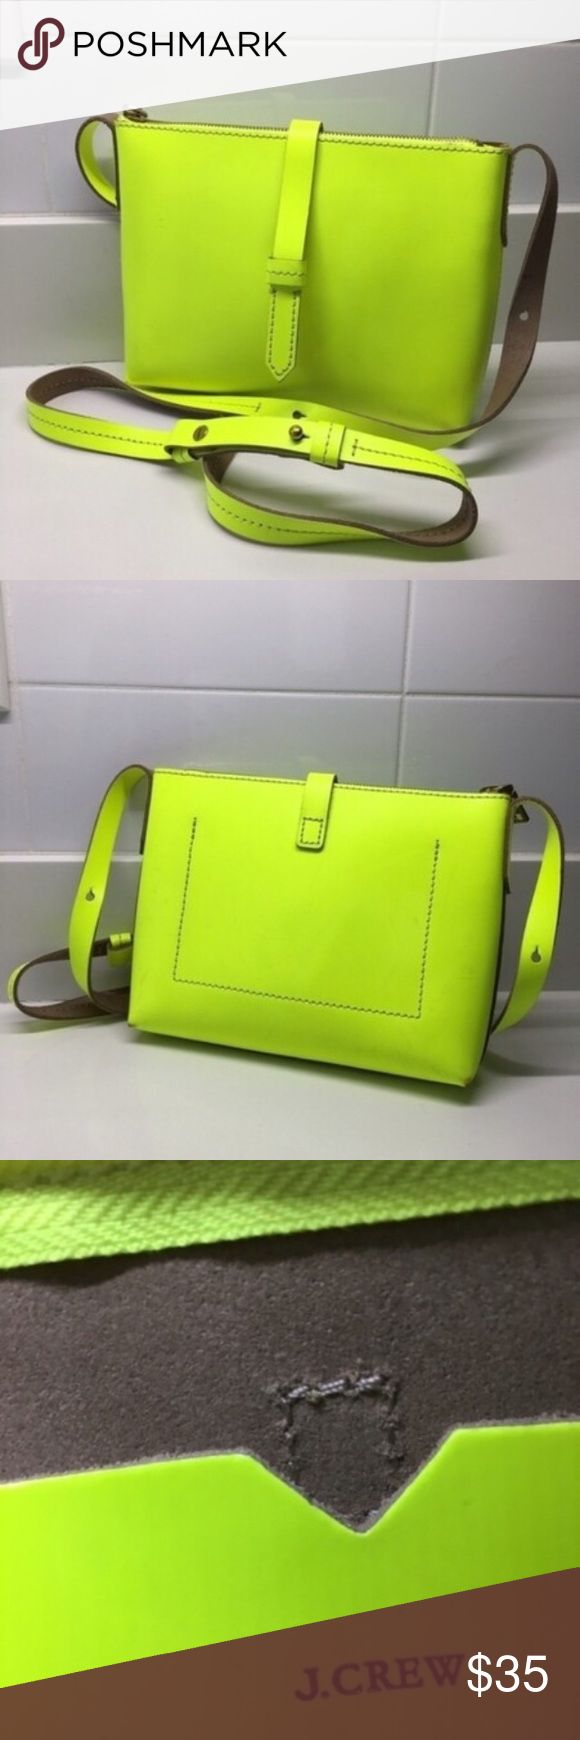 J Crew Parker Crossbody Brand: J crew Type: Crossbody bag Color: neon yellow Material: 100% leather  Condition: I've worn it only a couple of times. The bag itself is in a very good condition, zipper works perfect. There are only some light spots on both sides of the bag, like you can see on the picture in my gallery.   Retail price: $98.00 J Crew Bags Crossbody Bags